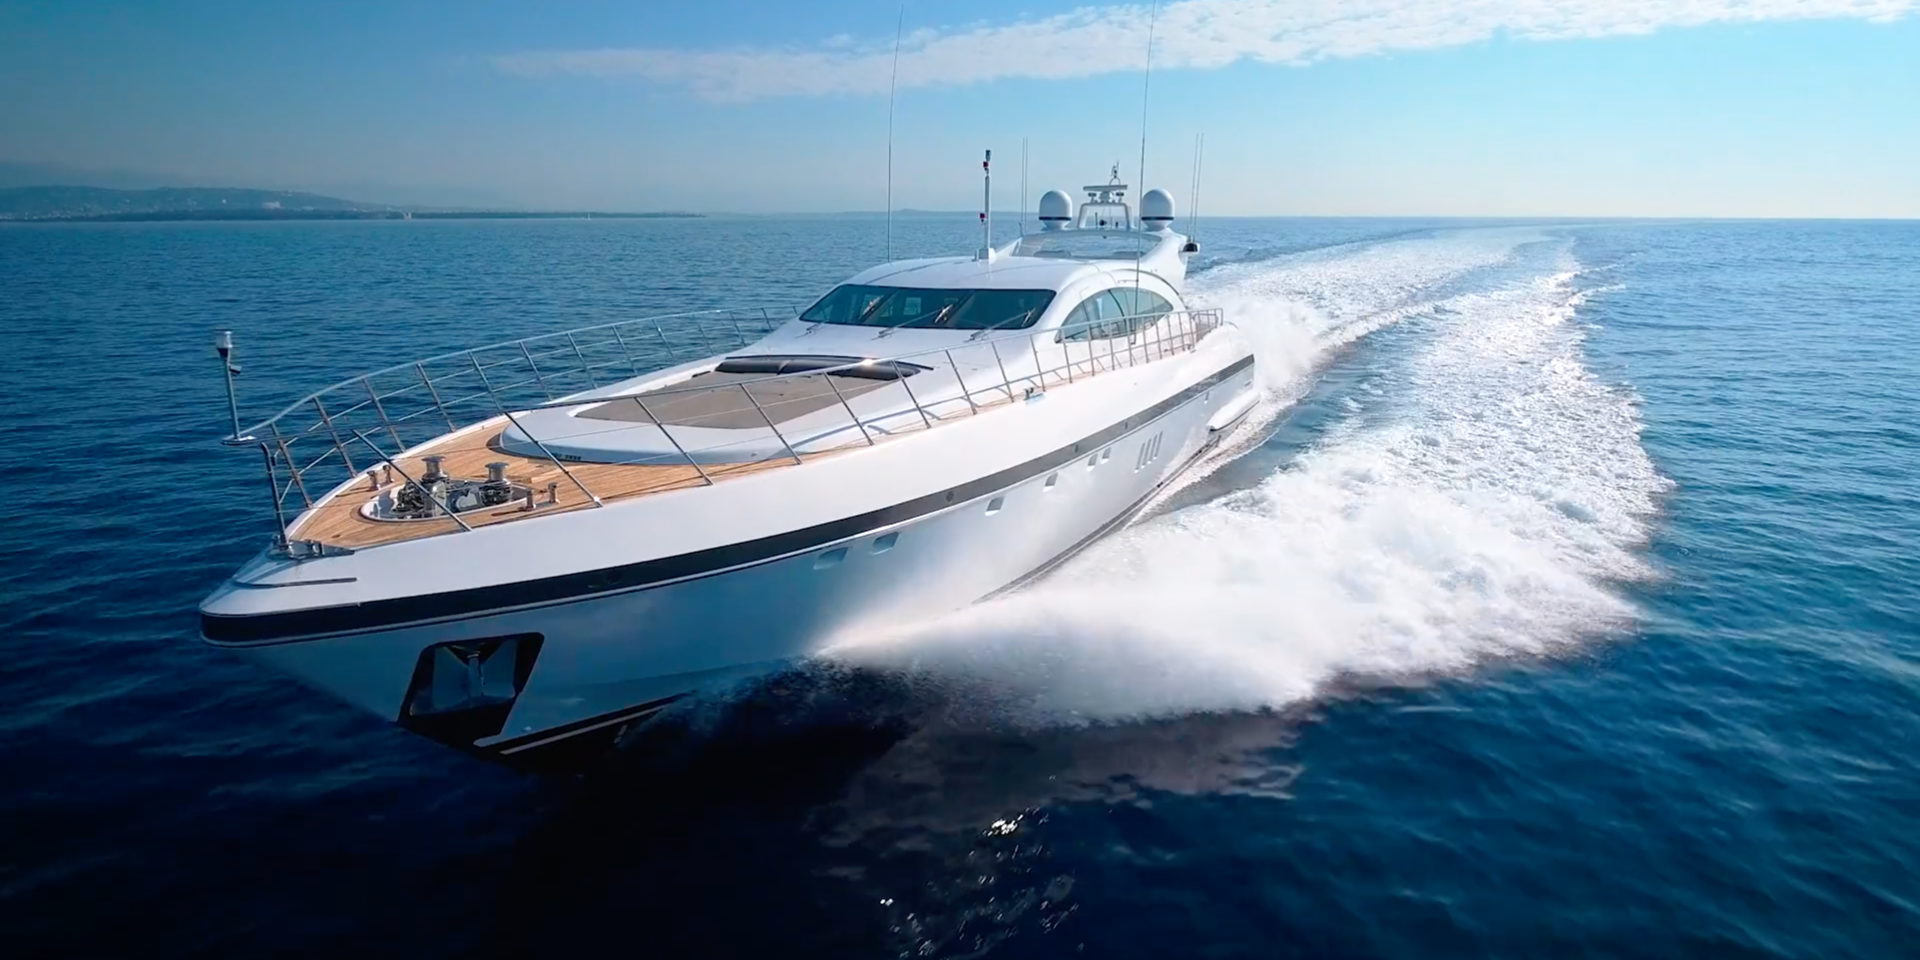 MANGUSTA 108 'VEYRON' – SHORT DOCUMENTARY